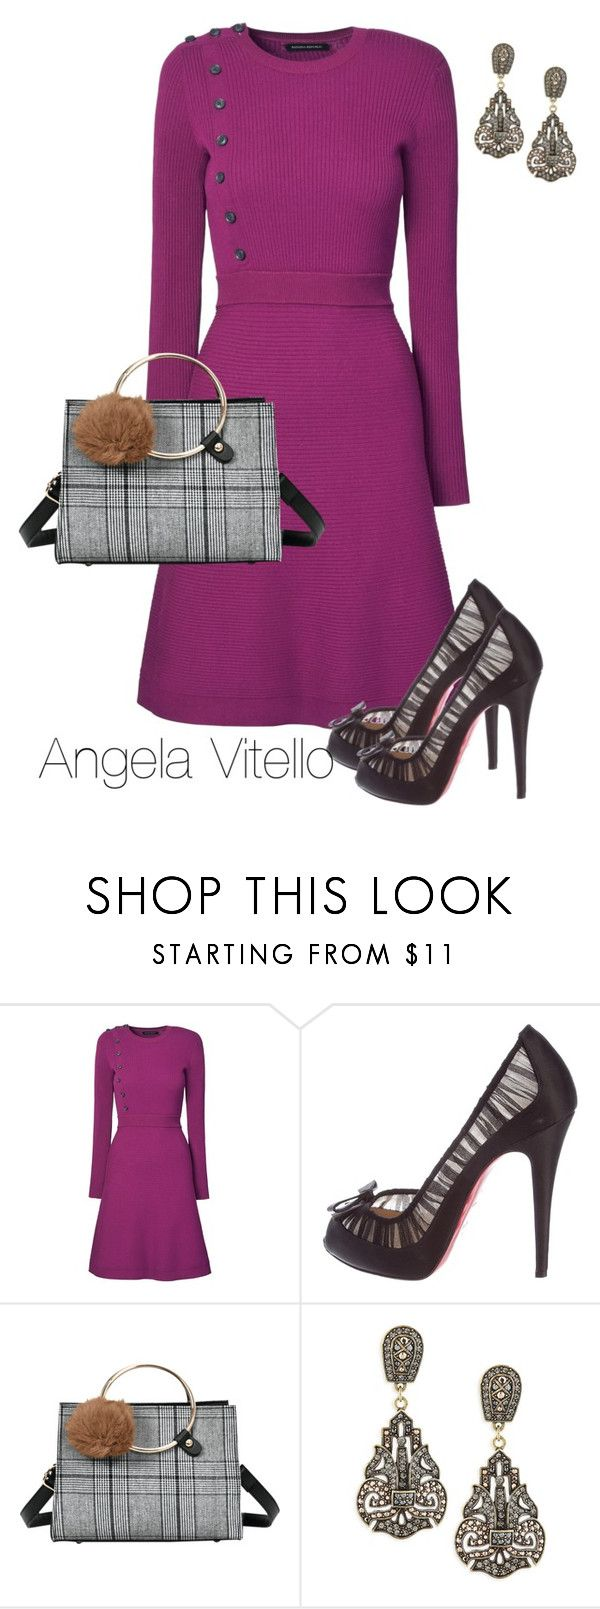 """Untitled #1051"" by angela-vitello on Polyvore featuring Christian Louboutin and Heidi Daus"